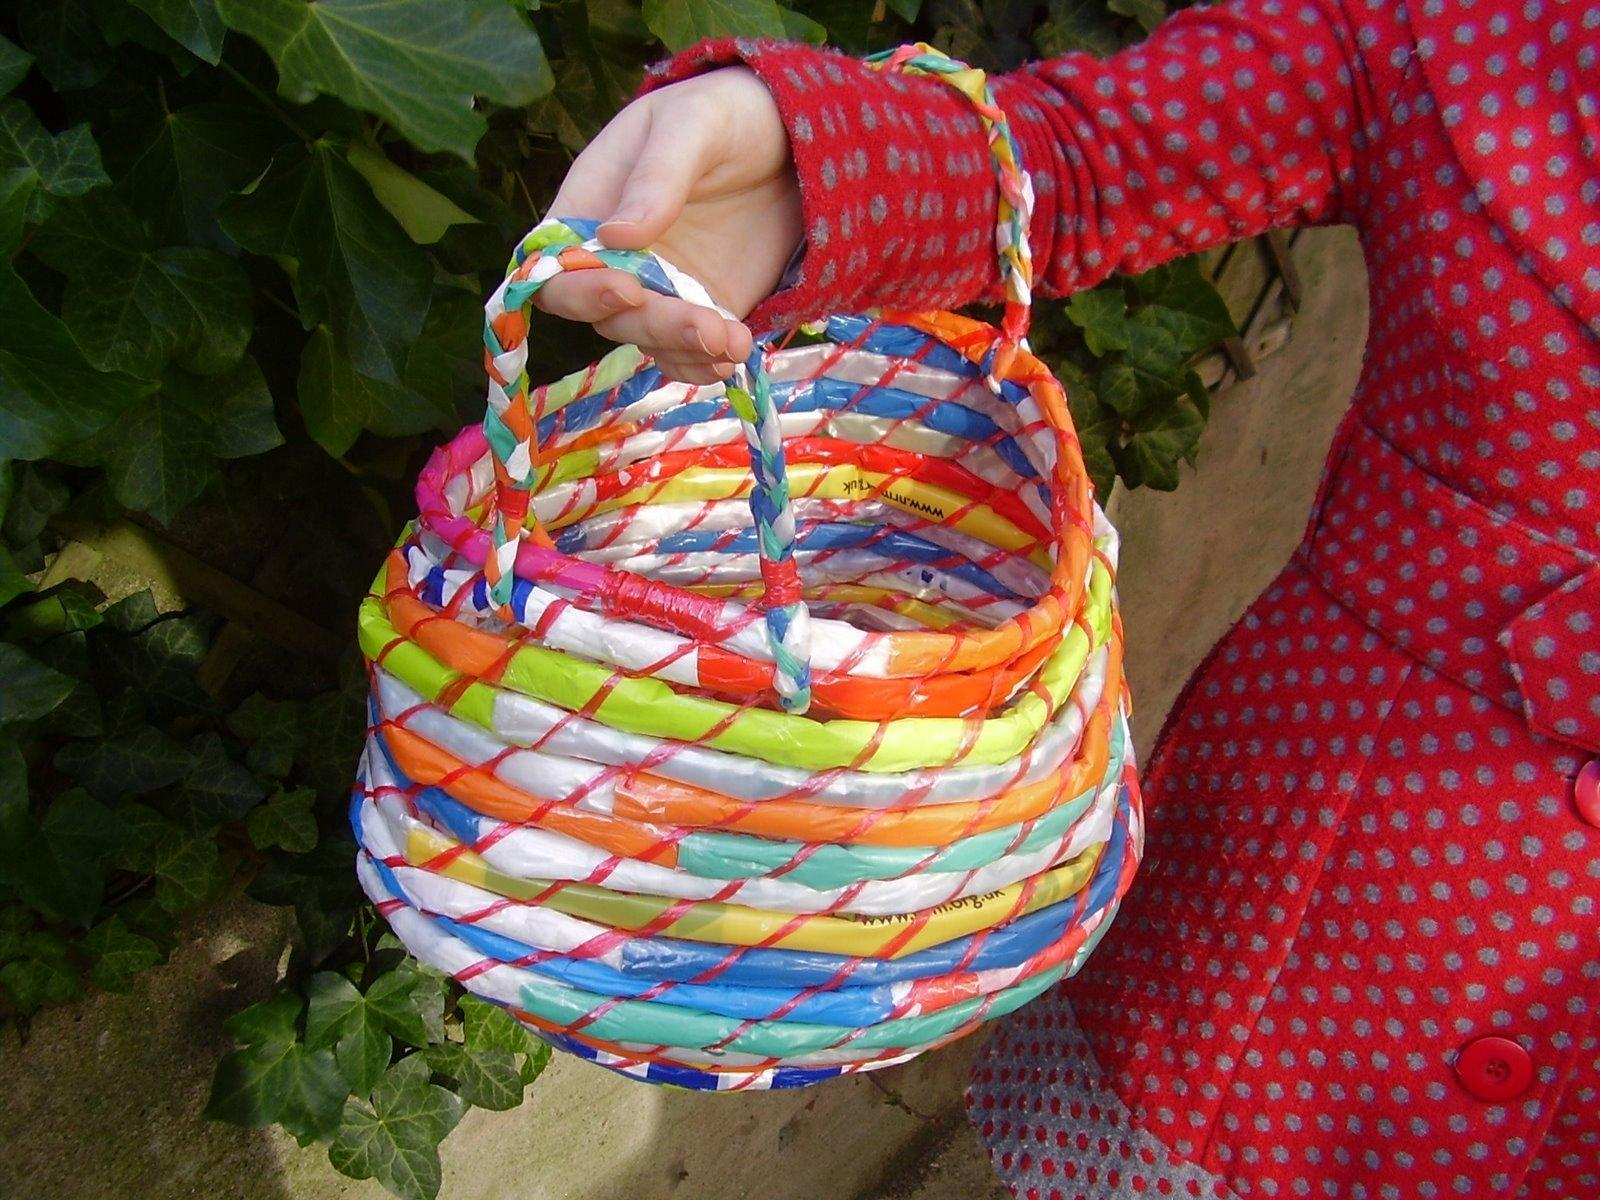 Woven Bag From Recycled Plastic Bags